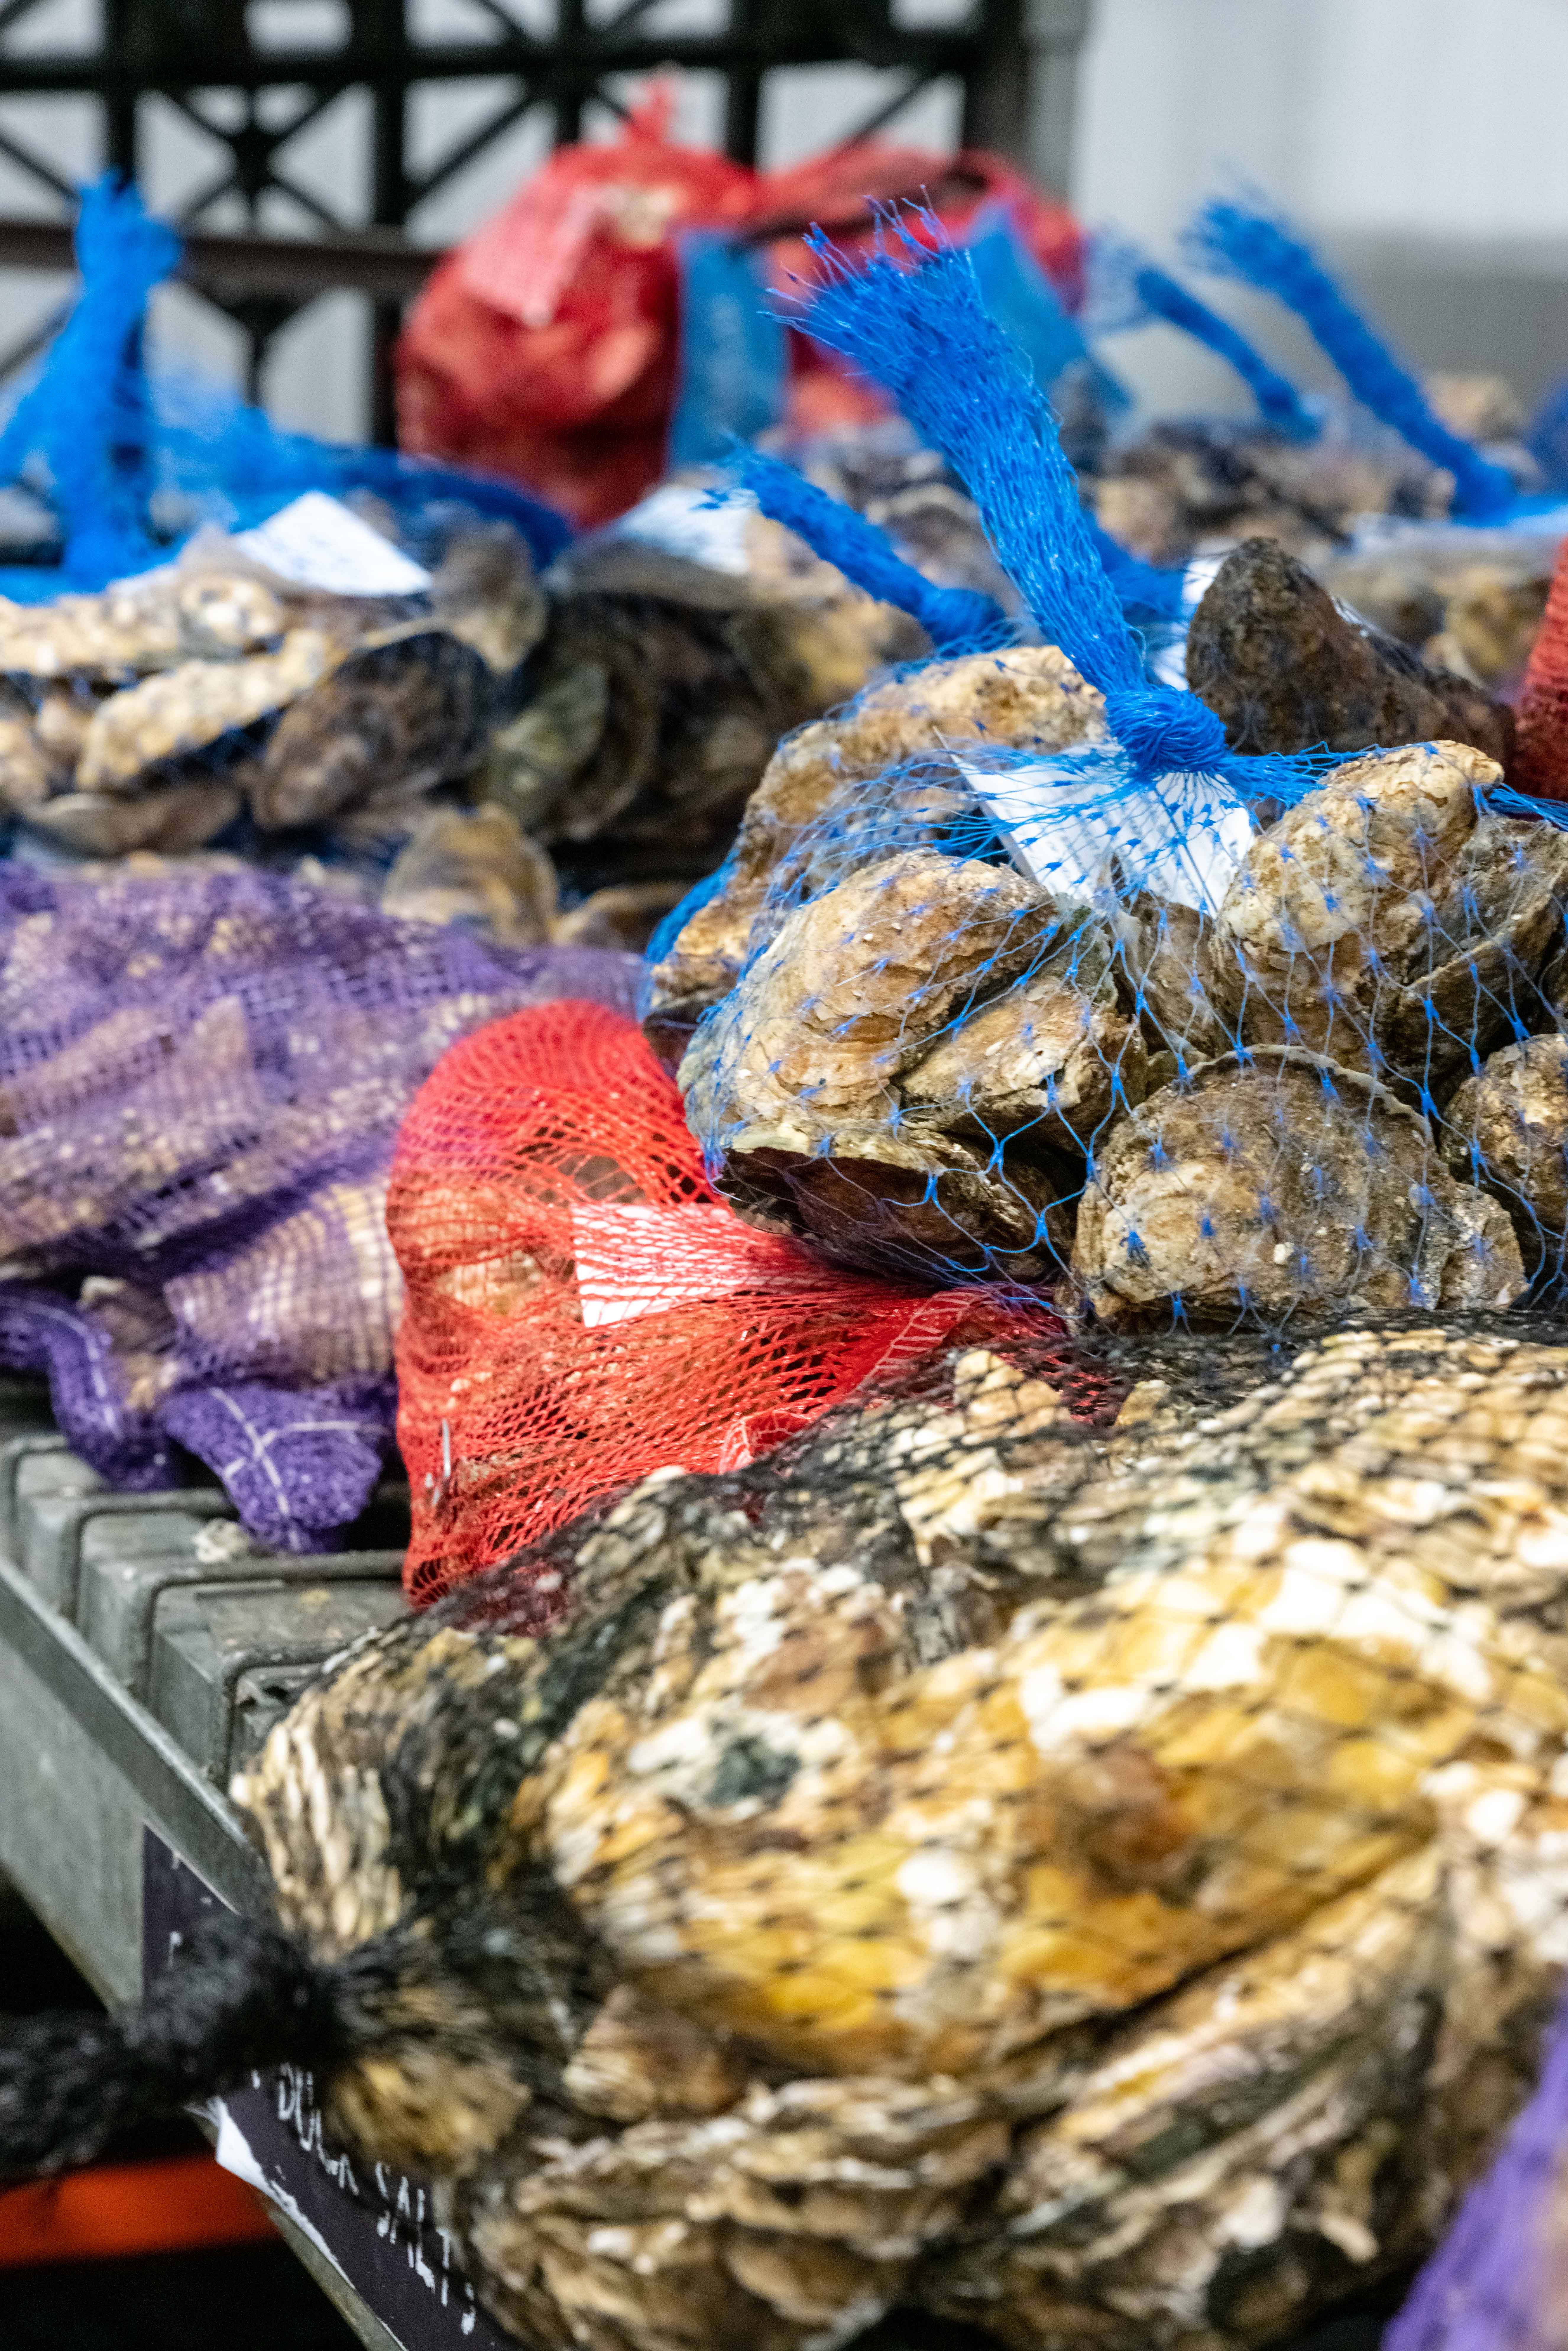 Blue Pool Oyster come from Hama Hama Farm in Washington's Hood Canal.